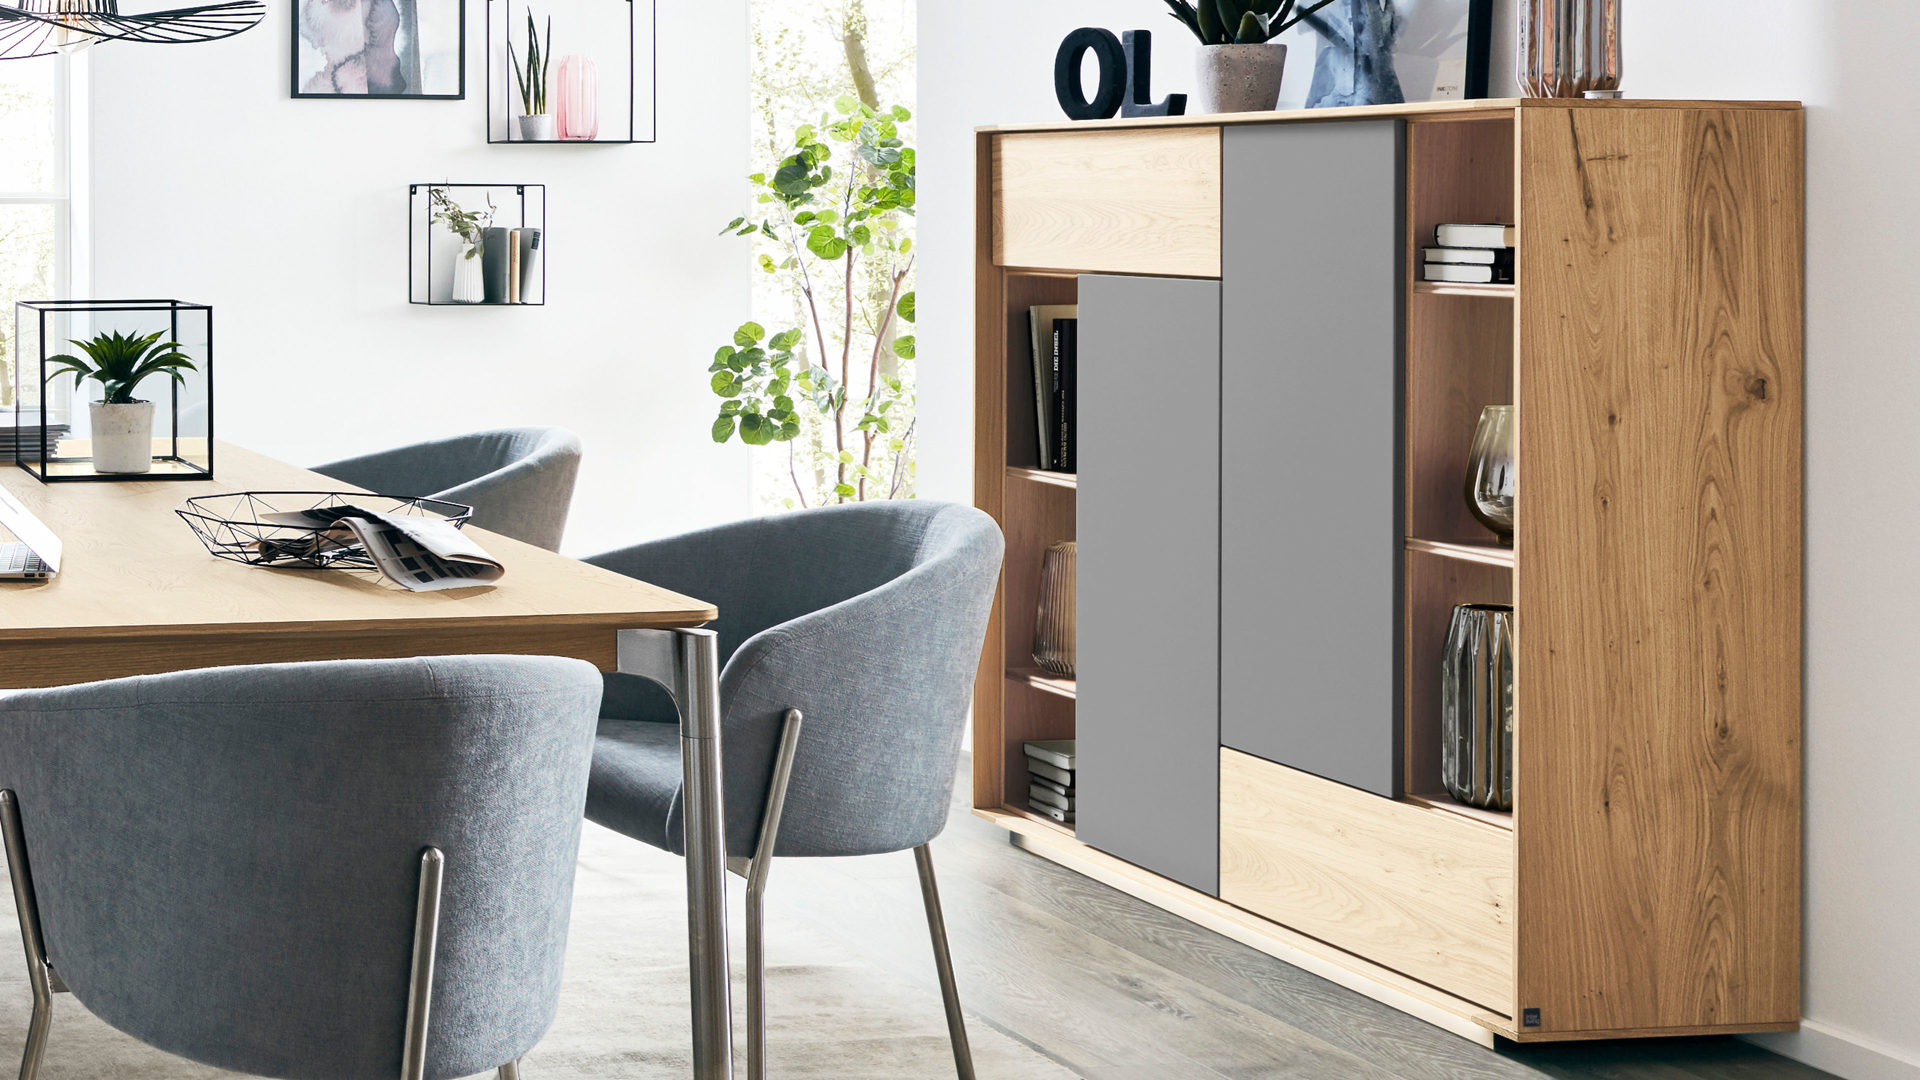 Highboard Interliving aus Holz in Grau Interliving Esszimmer Serie 5602 – Highboard anthrazitfarbener Lack & helle Wildeiche – zwei Türen, eine Schublade